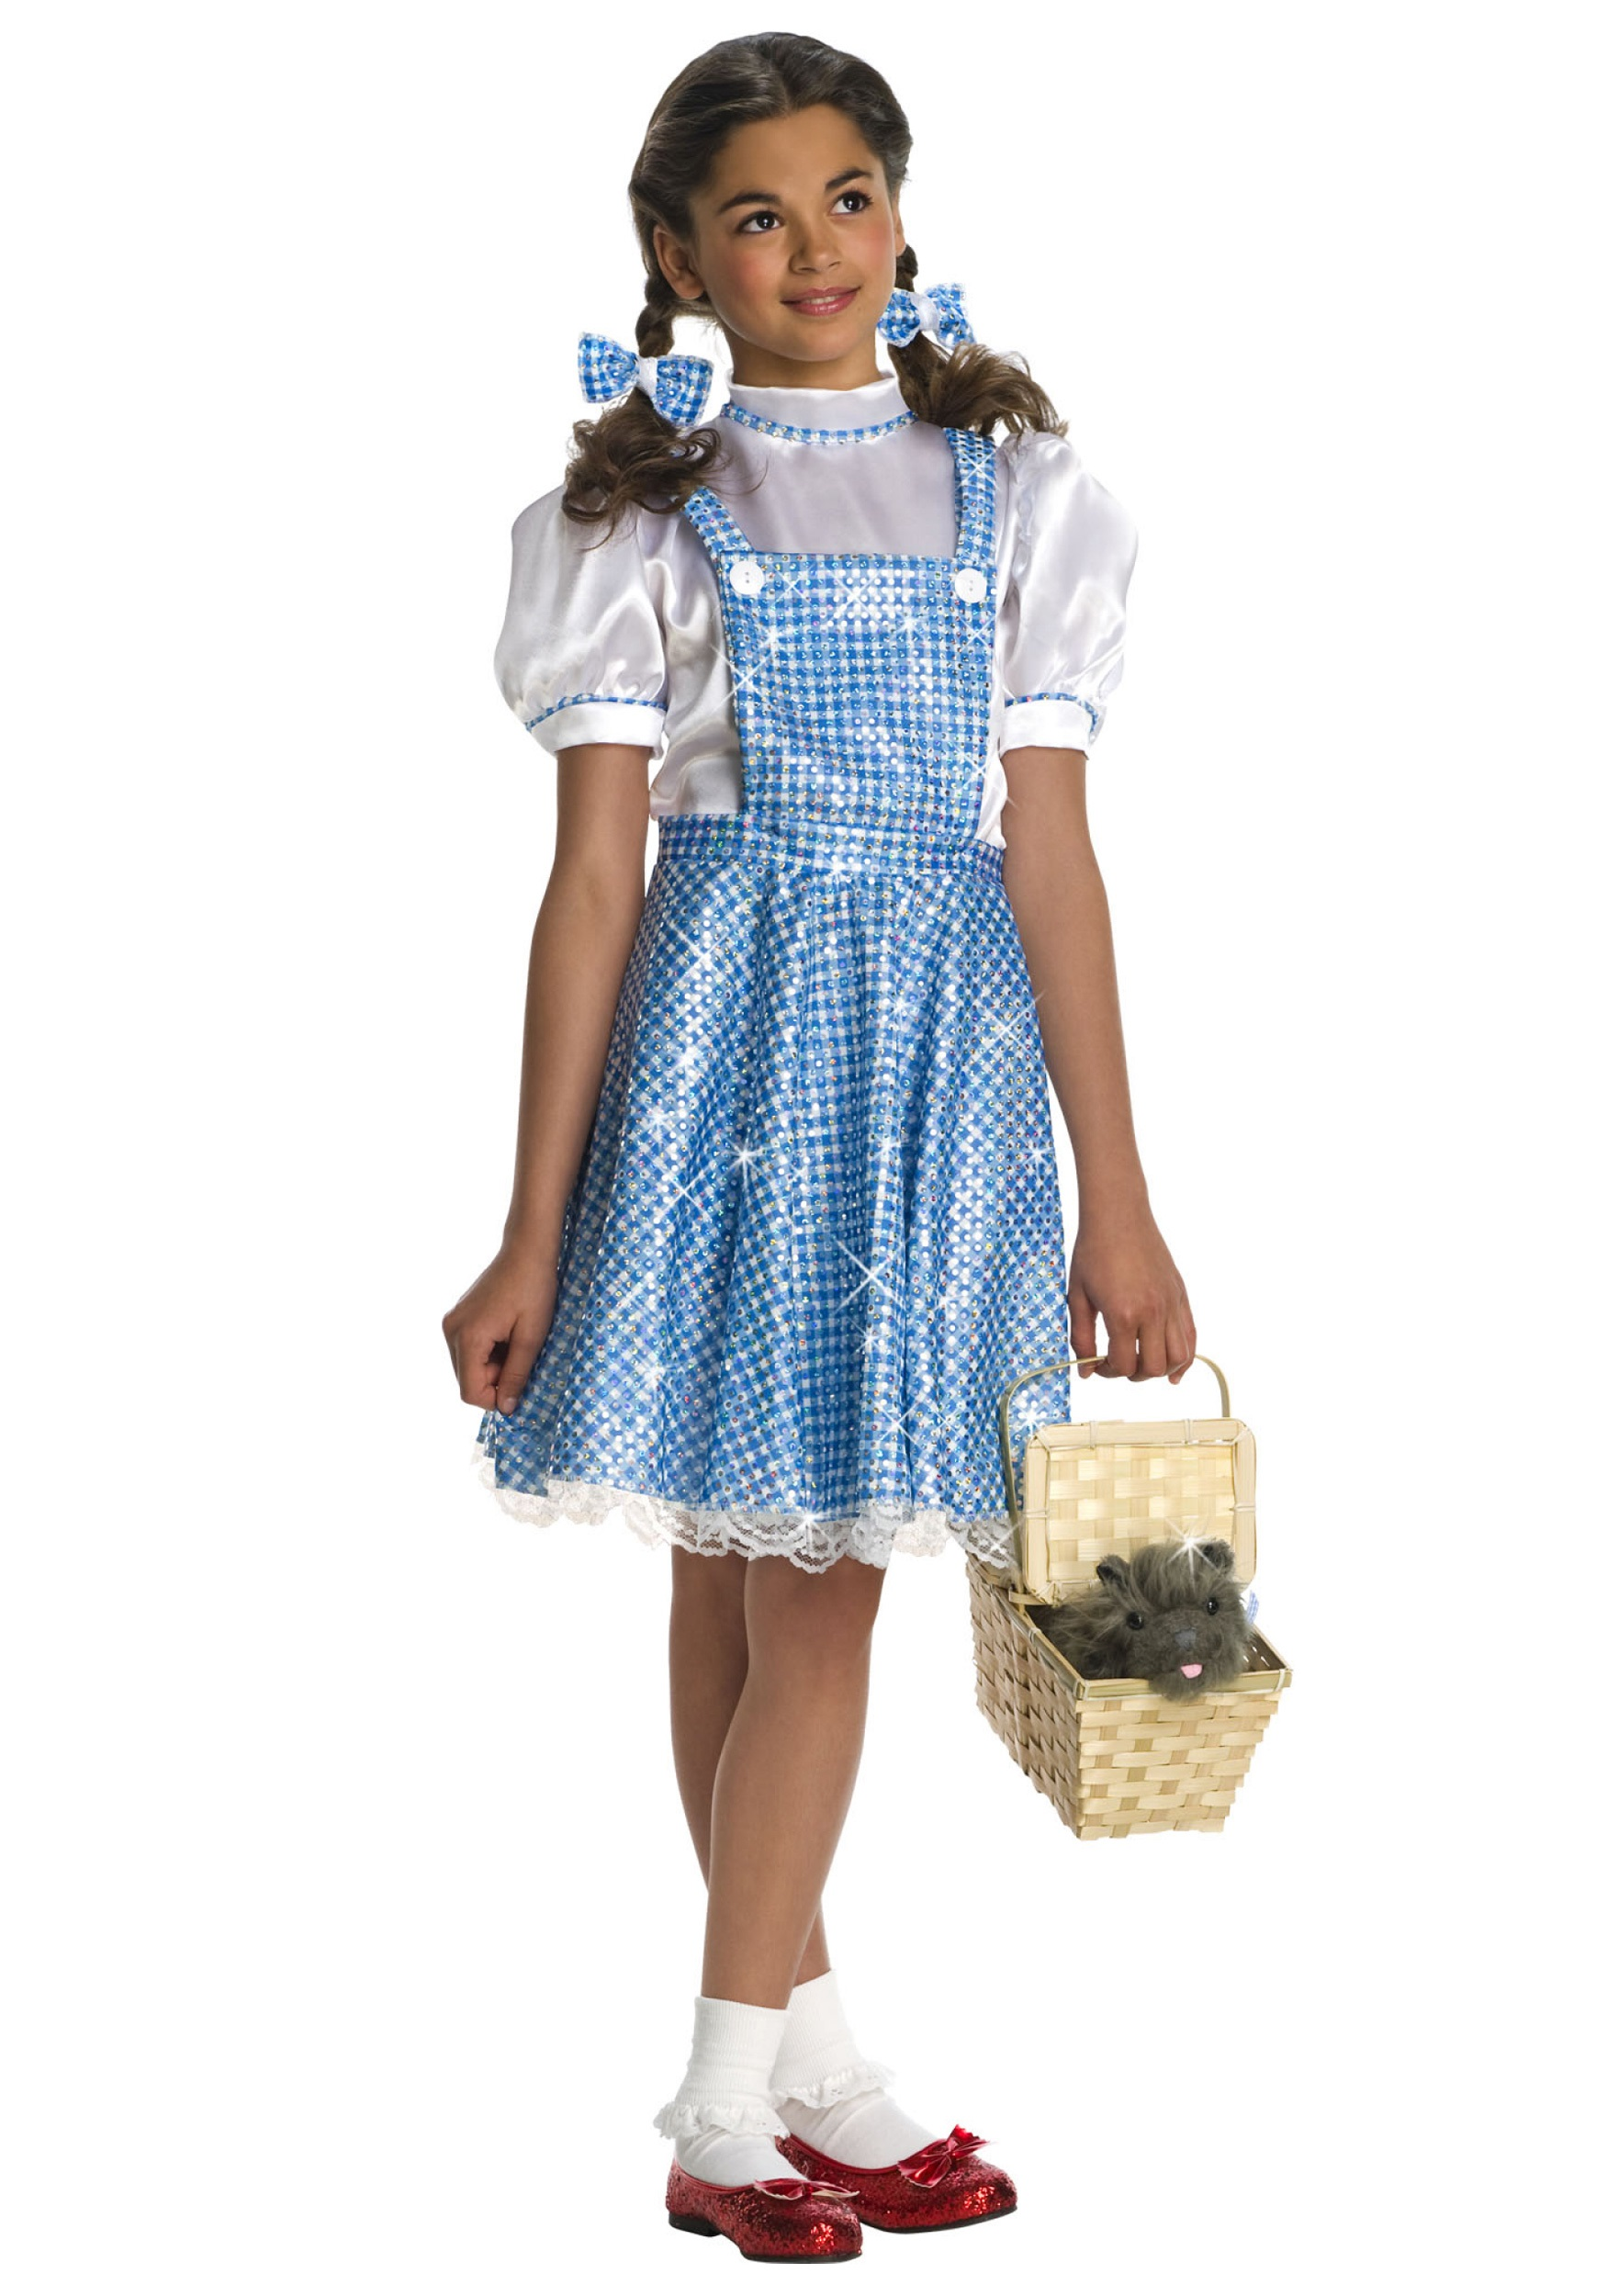 ... Dorothy ...  sc 1 th 268 & 1000u0027s of costumes. Both retail and theatrical quality rental ...